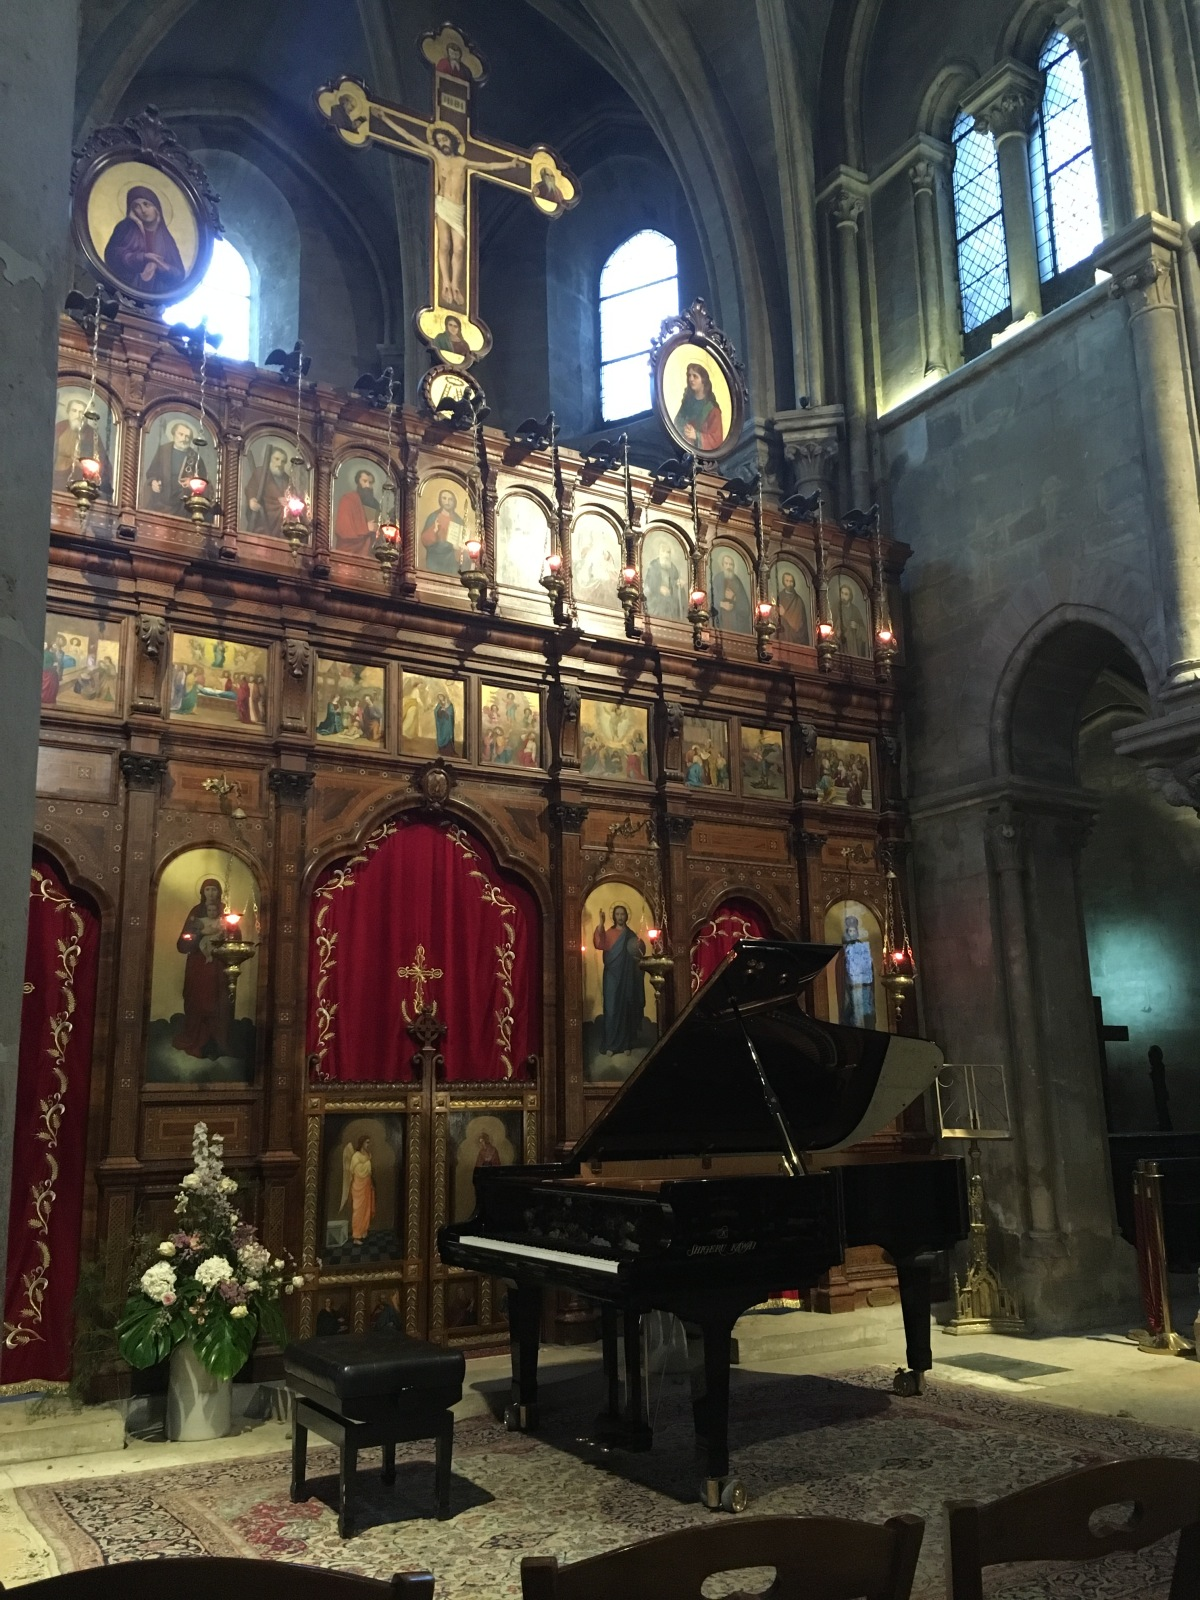 piano recital setup inside L'Eglise Saint-Julien-Le-Pauvre, Paris